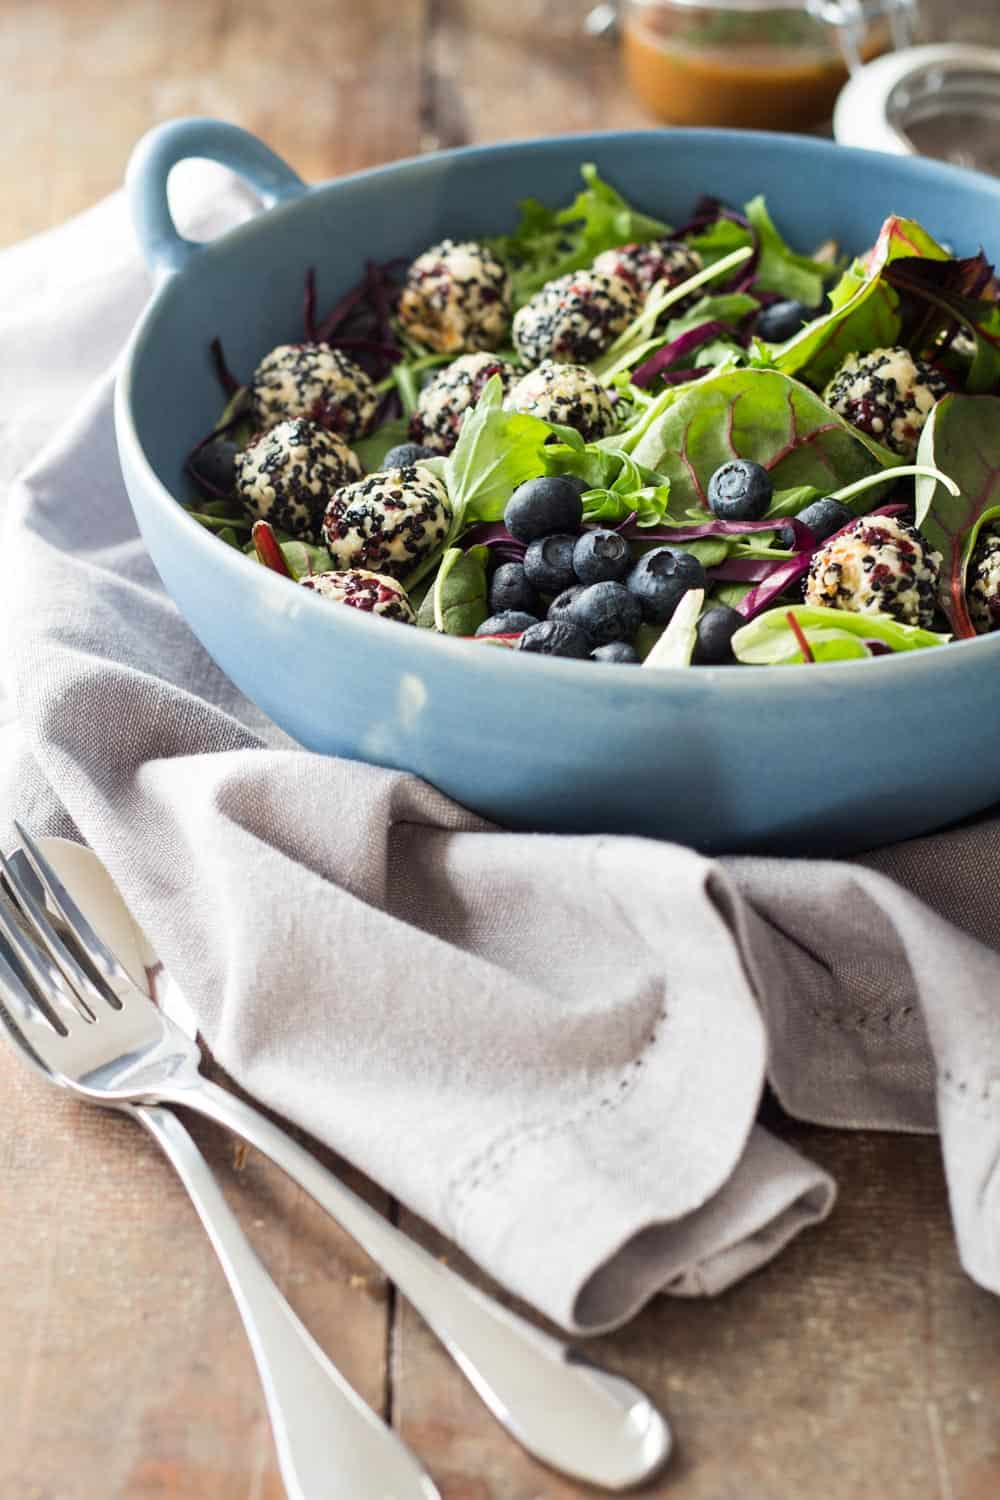 Warm Goat Cheese Salad in a blue salad bowl